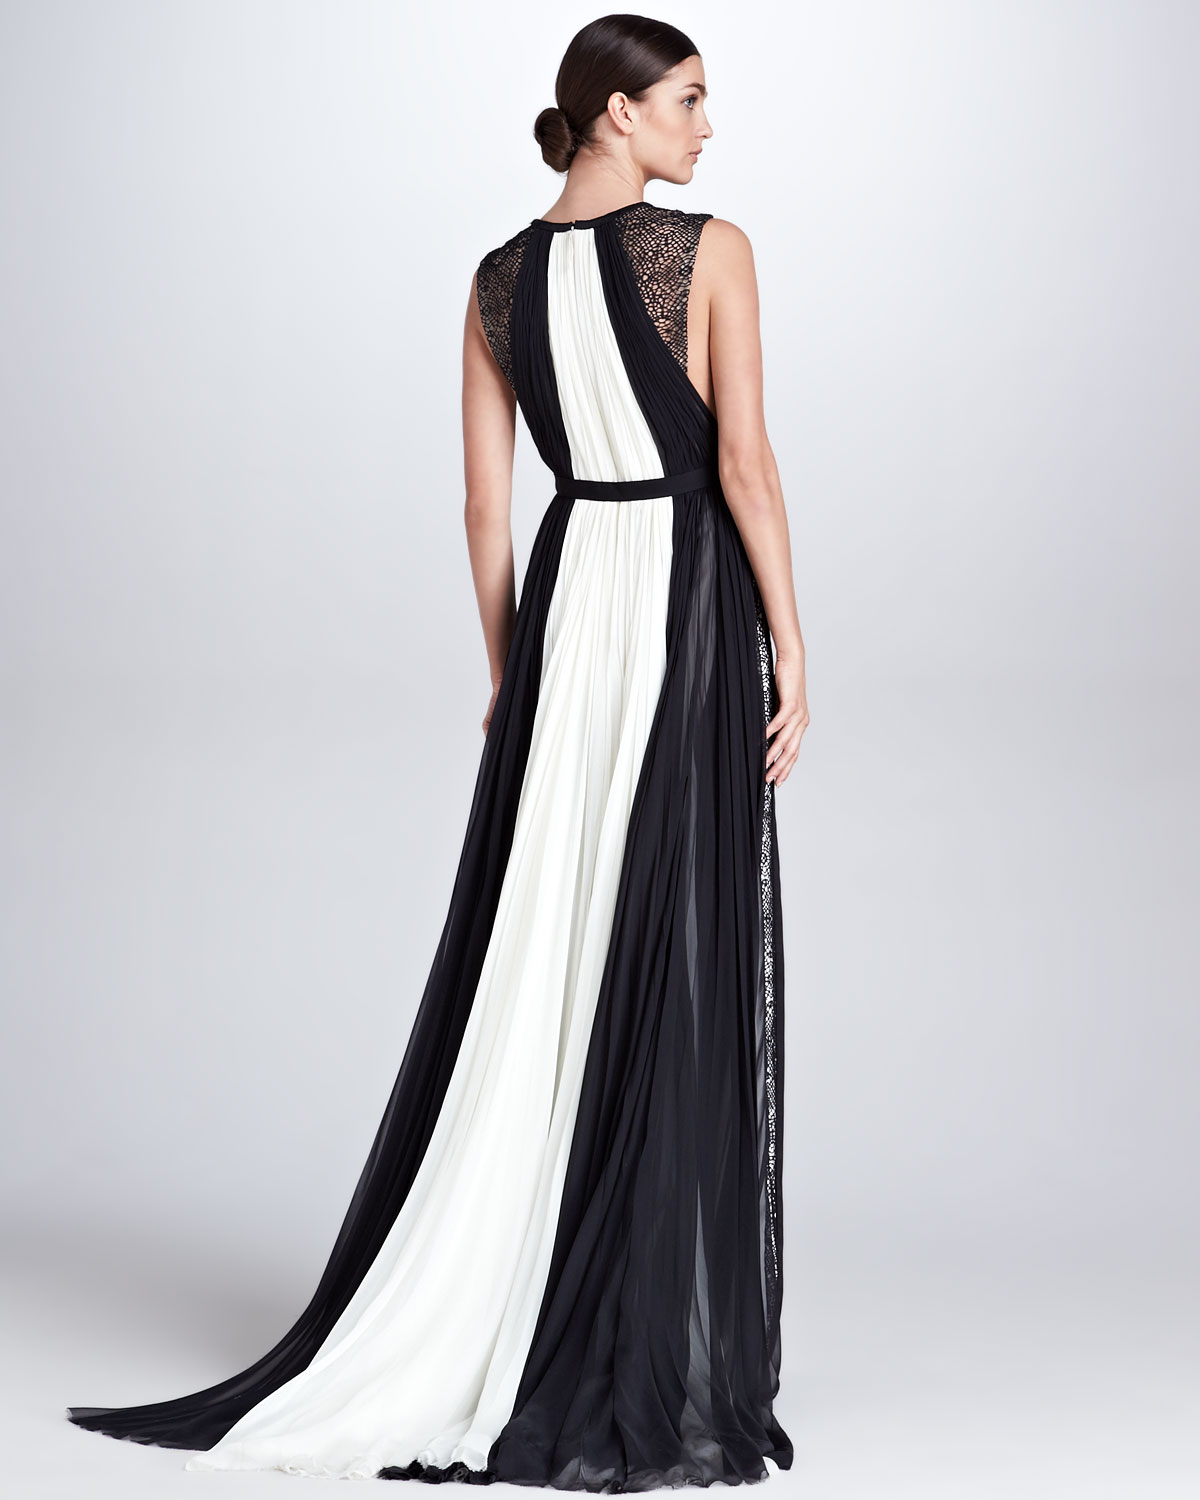 Lyst - J. Mendel Colorblock Keyhole Ball Gown Ivoryblack in White